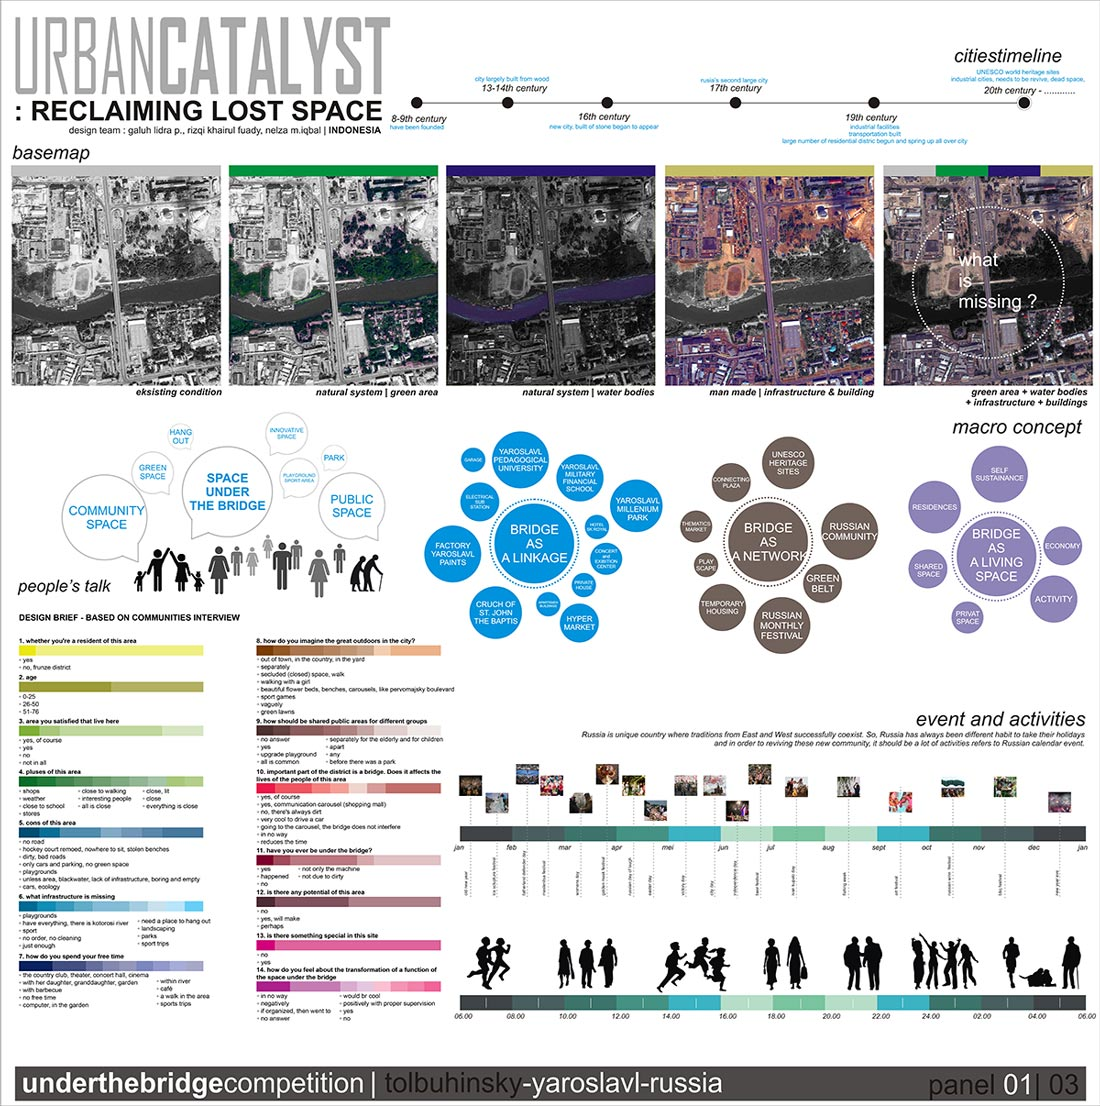 Urban Catalyst: Reclaiming Lost Space